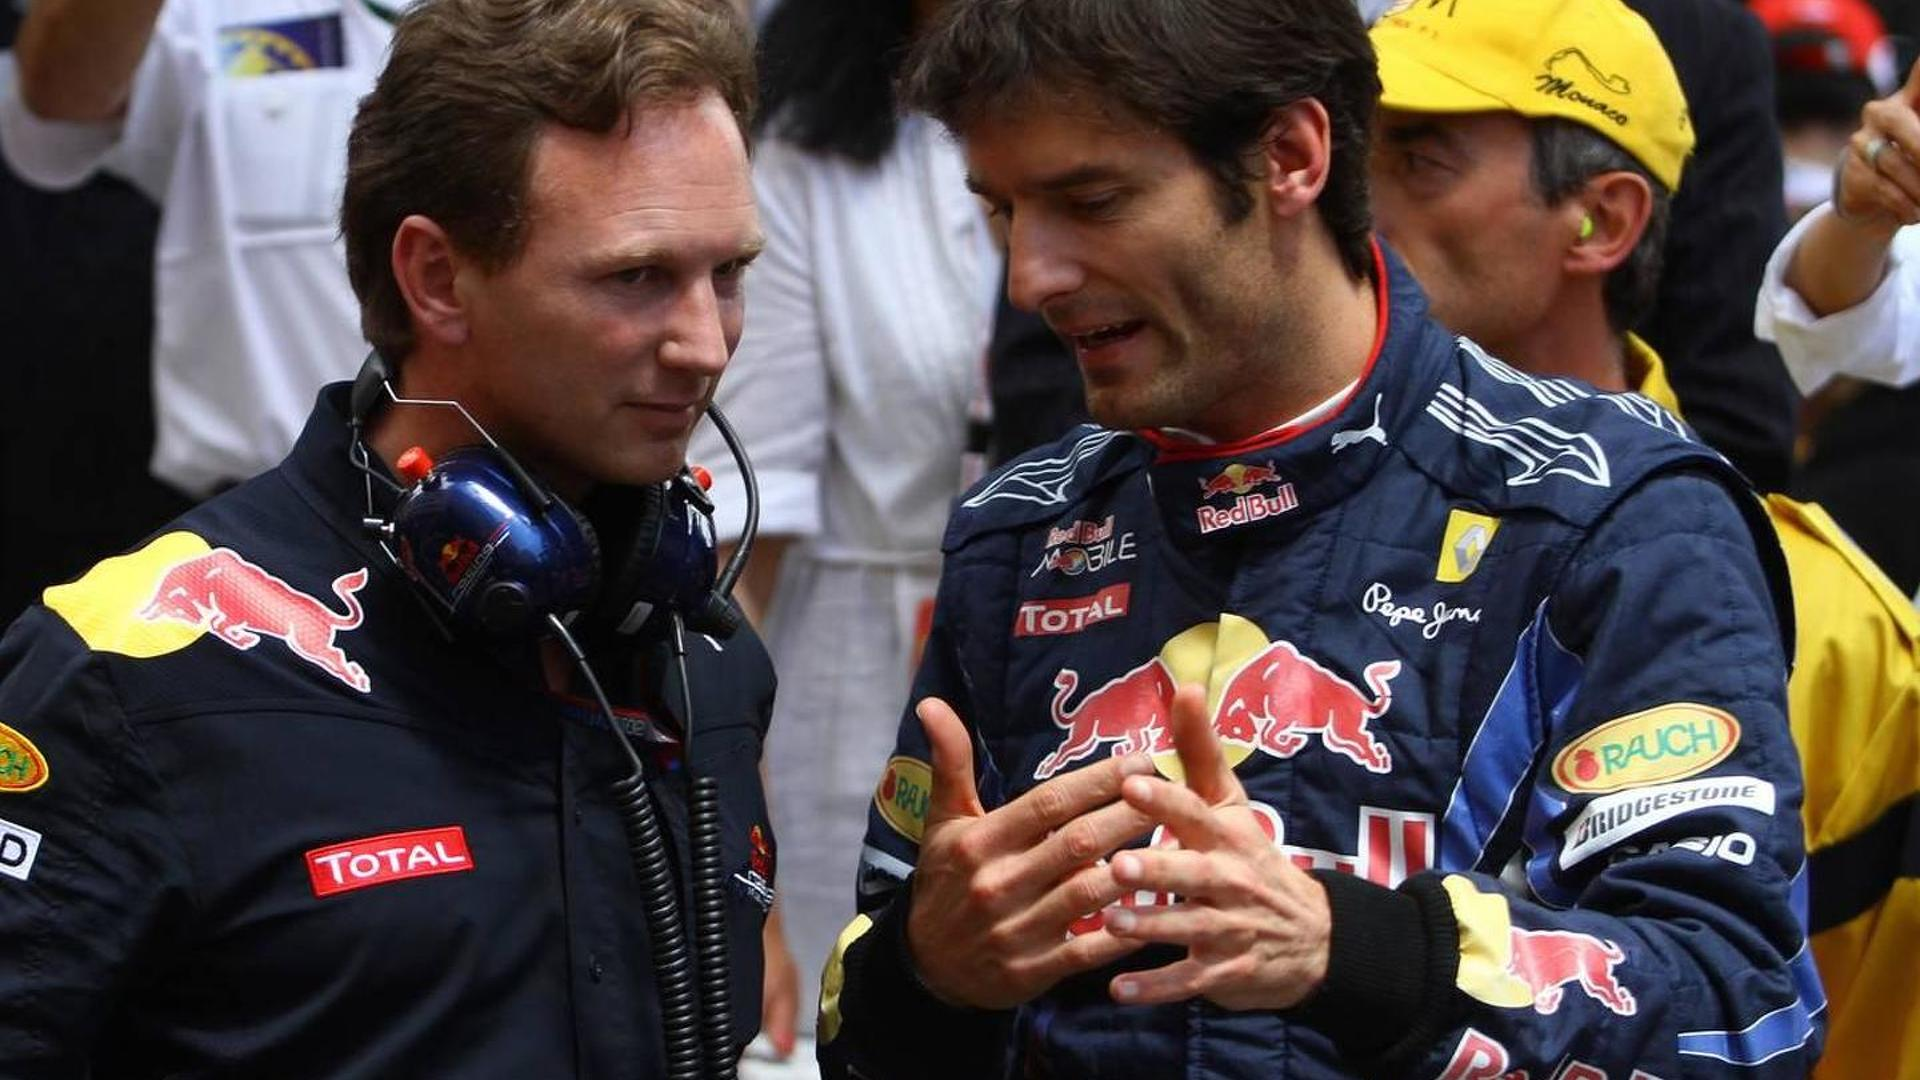 Horner upset Webber kept shoulder injury secret